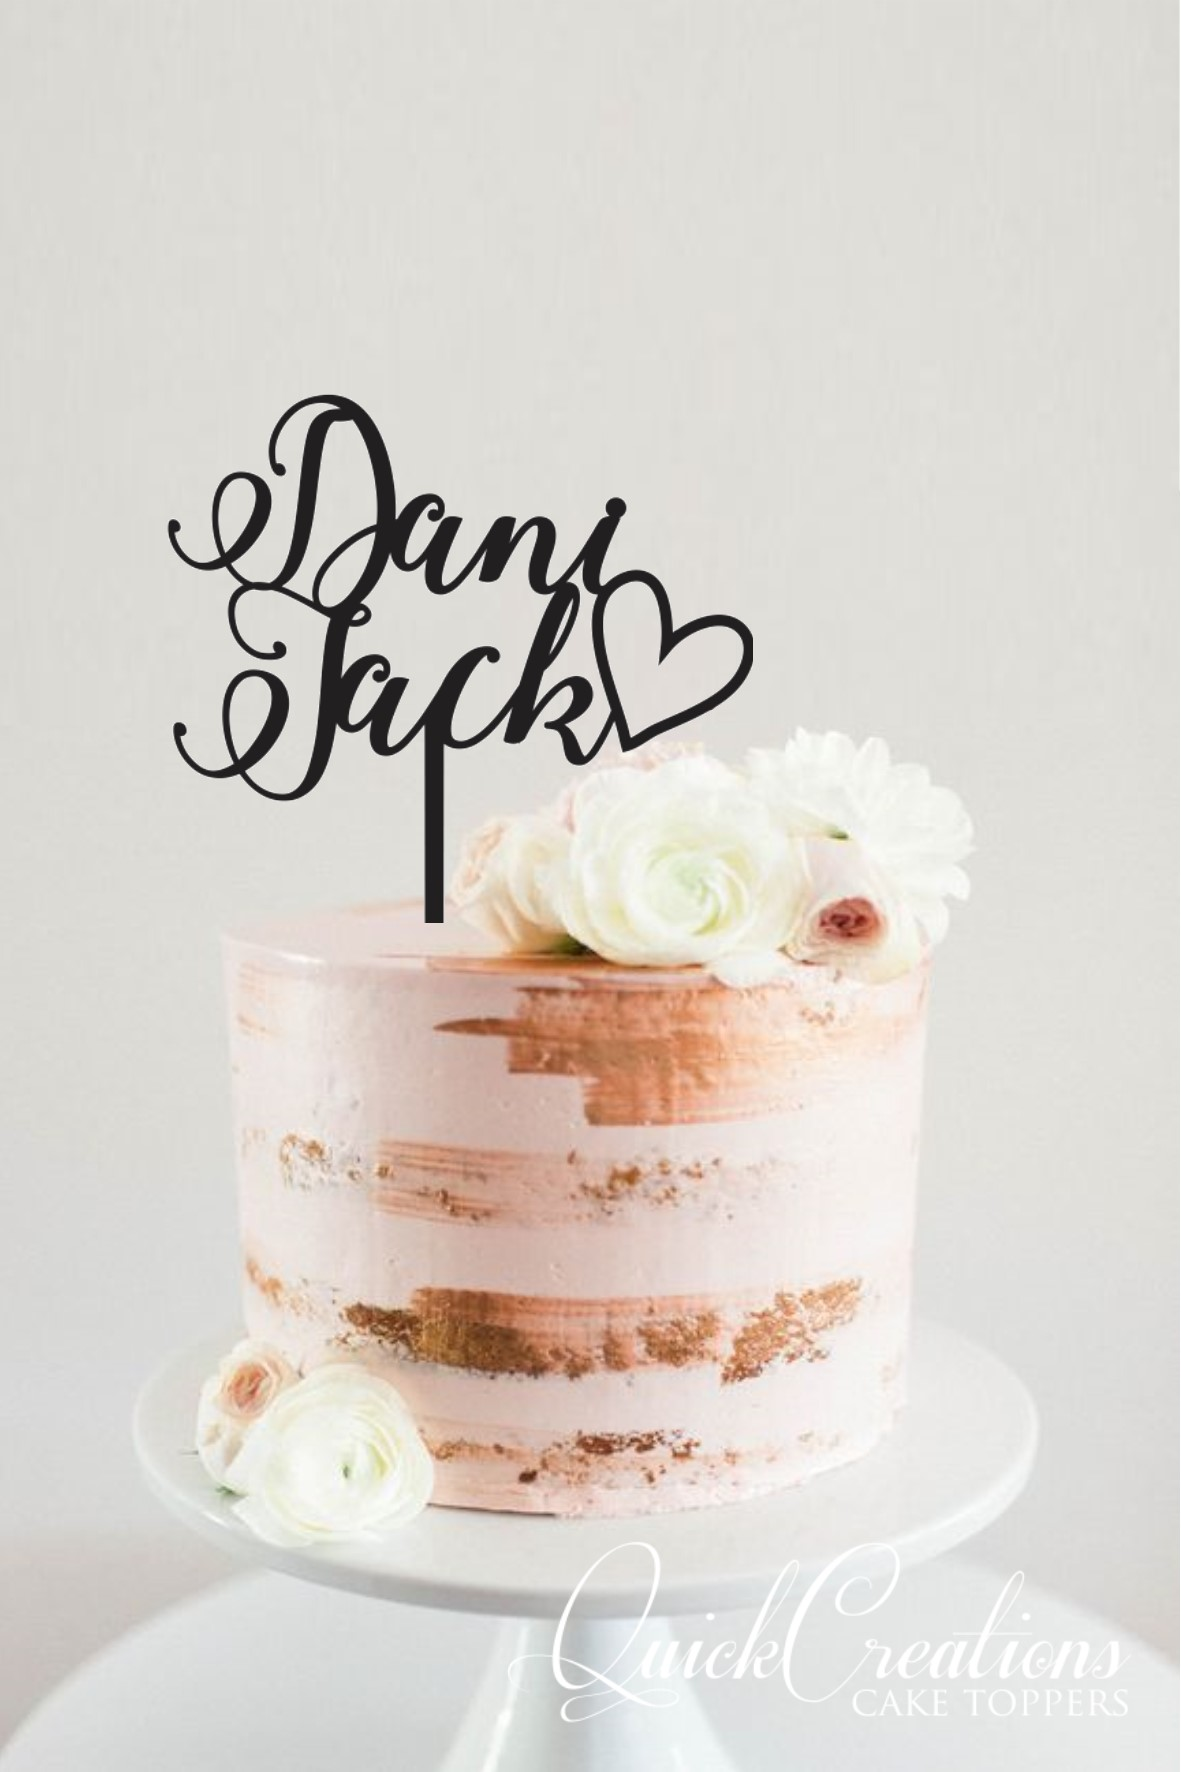 Quick Creations Cake Topper - Dani Heart Jack